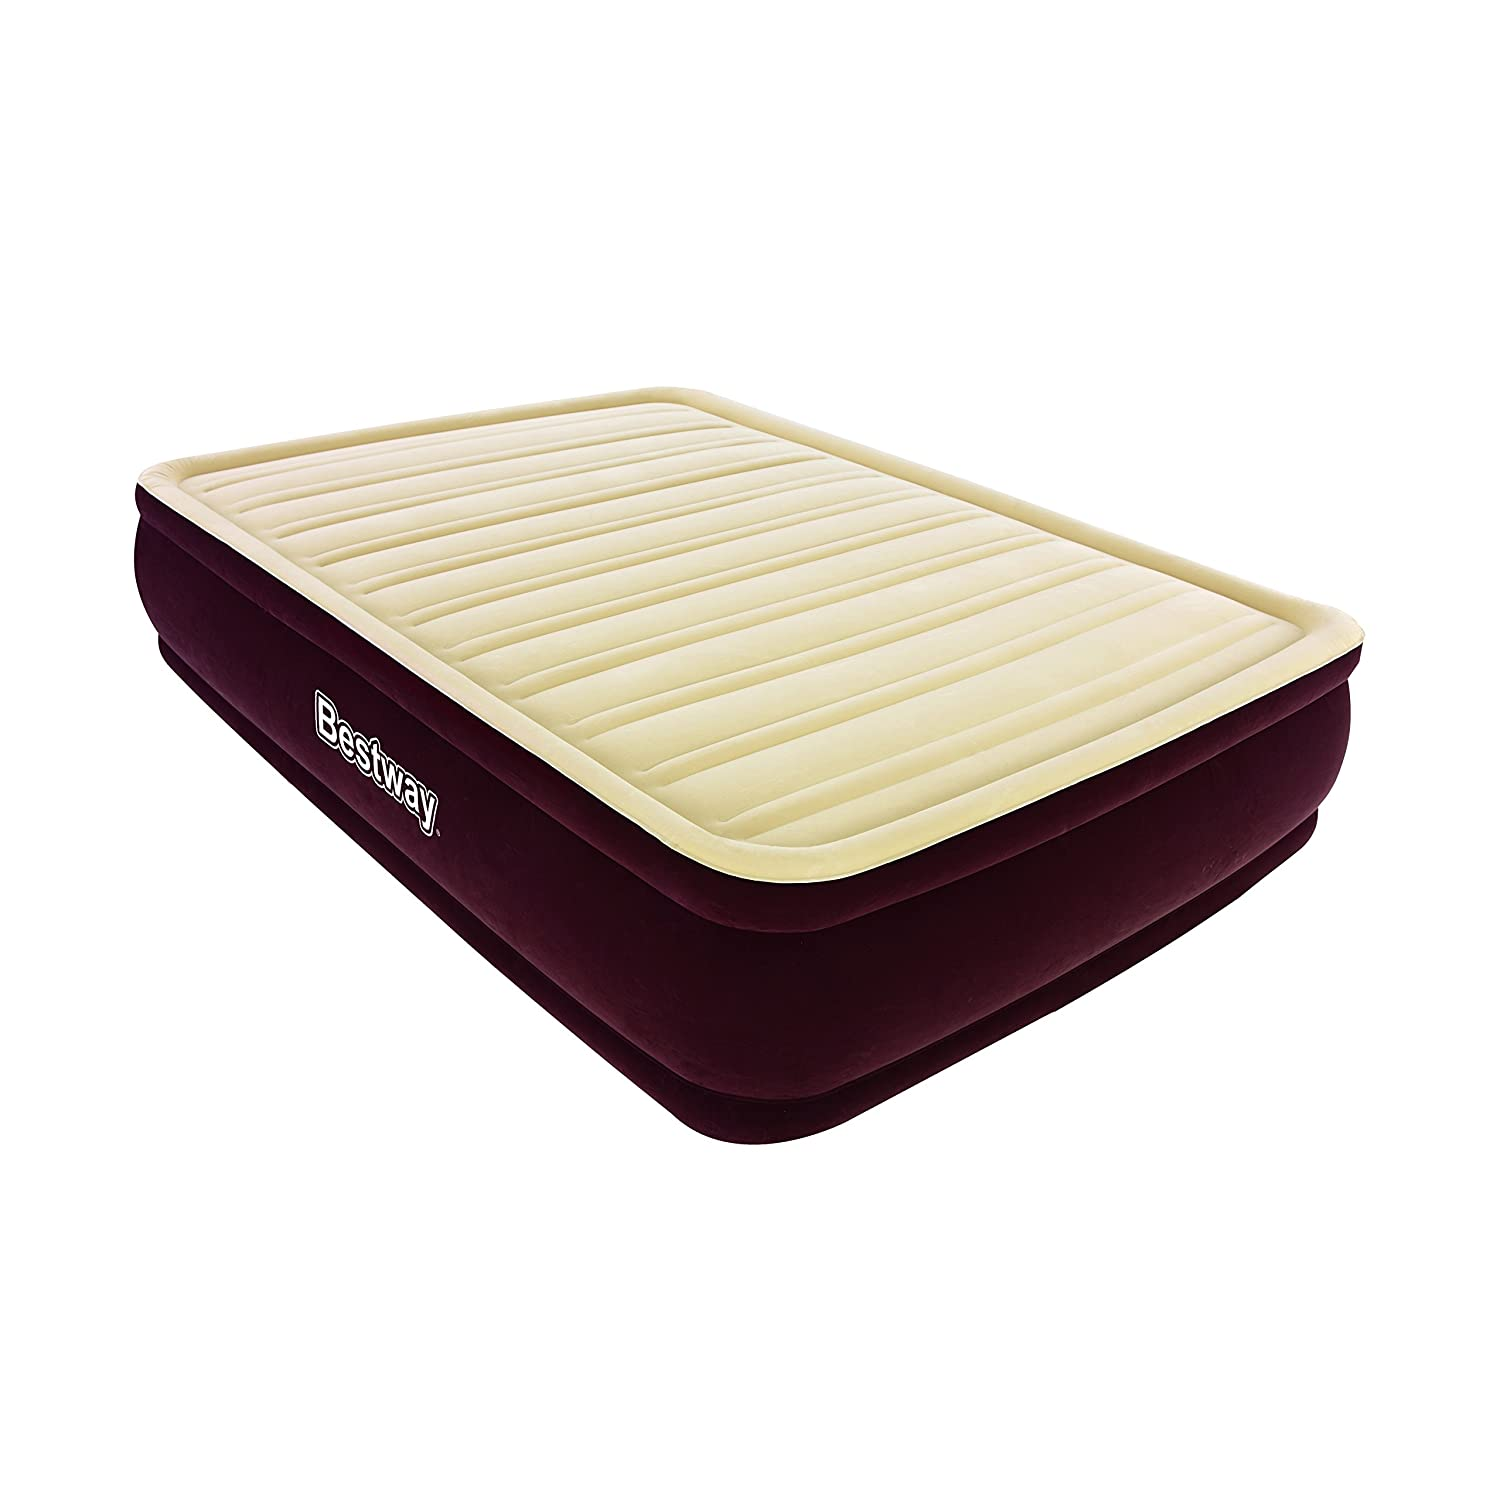 Bestway Luftbett Comfort Raised Single-Size